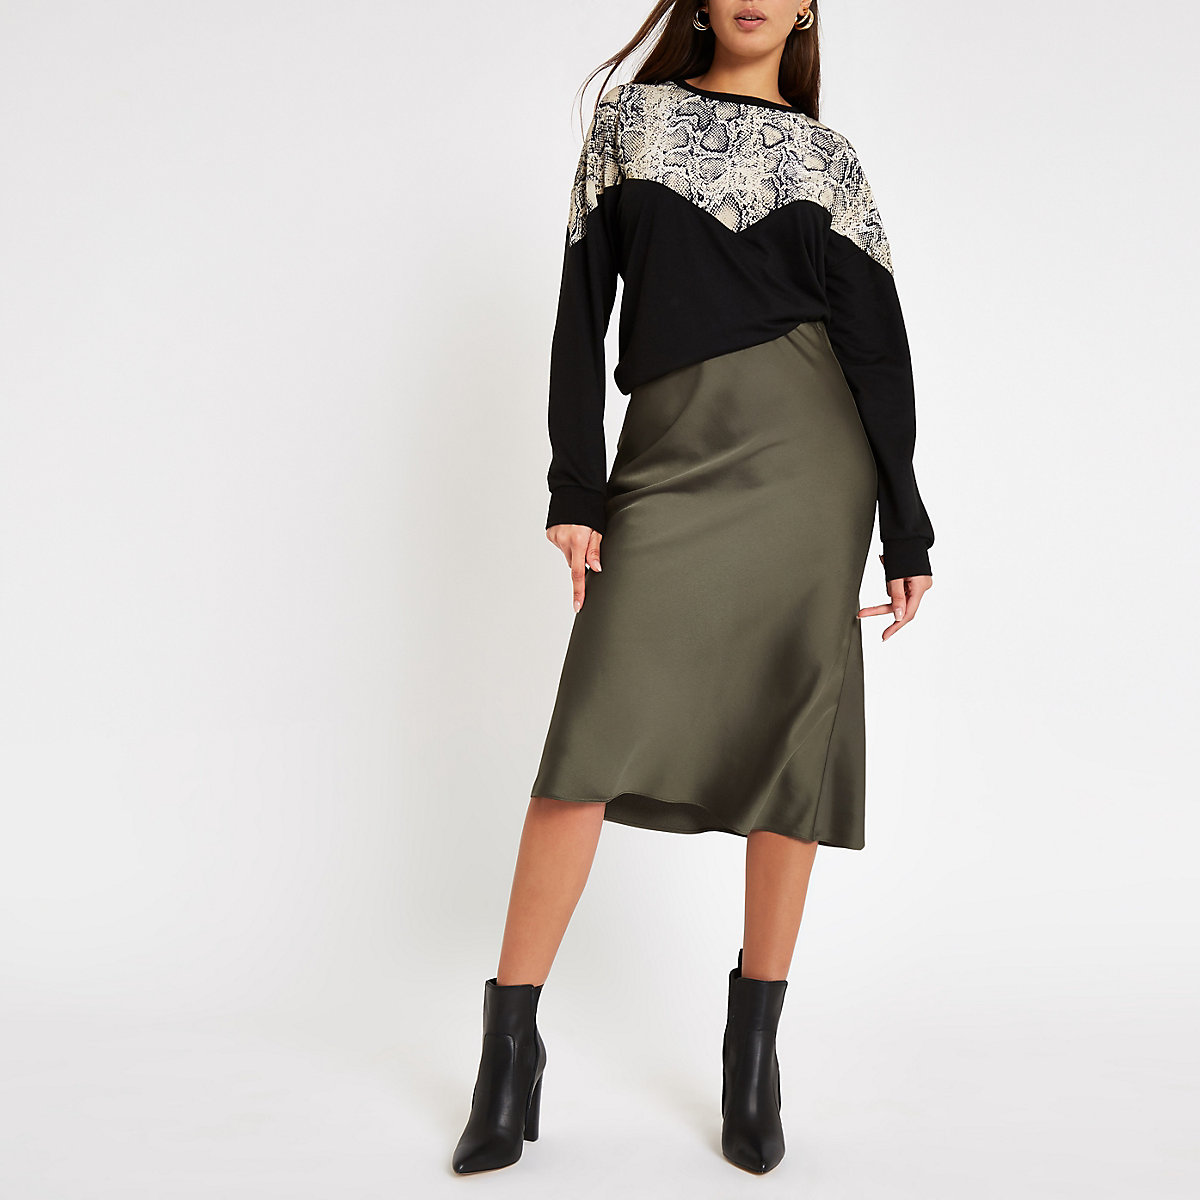 Khaki satin midi skirt